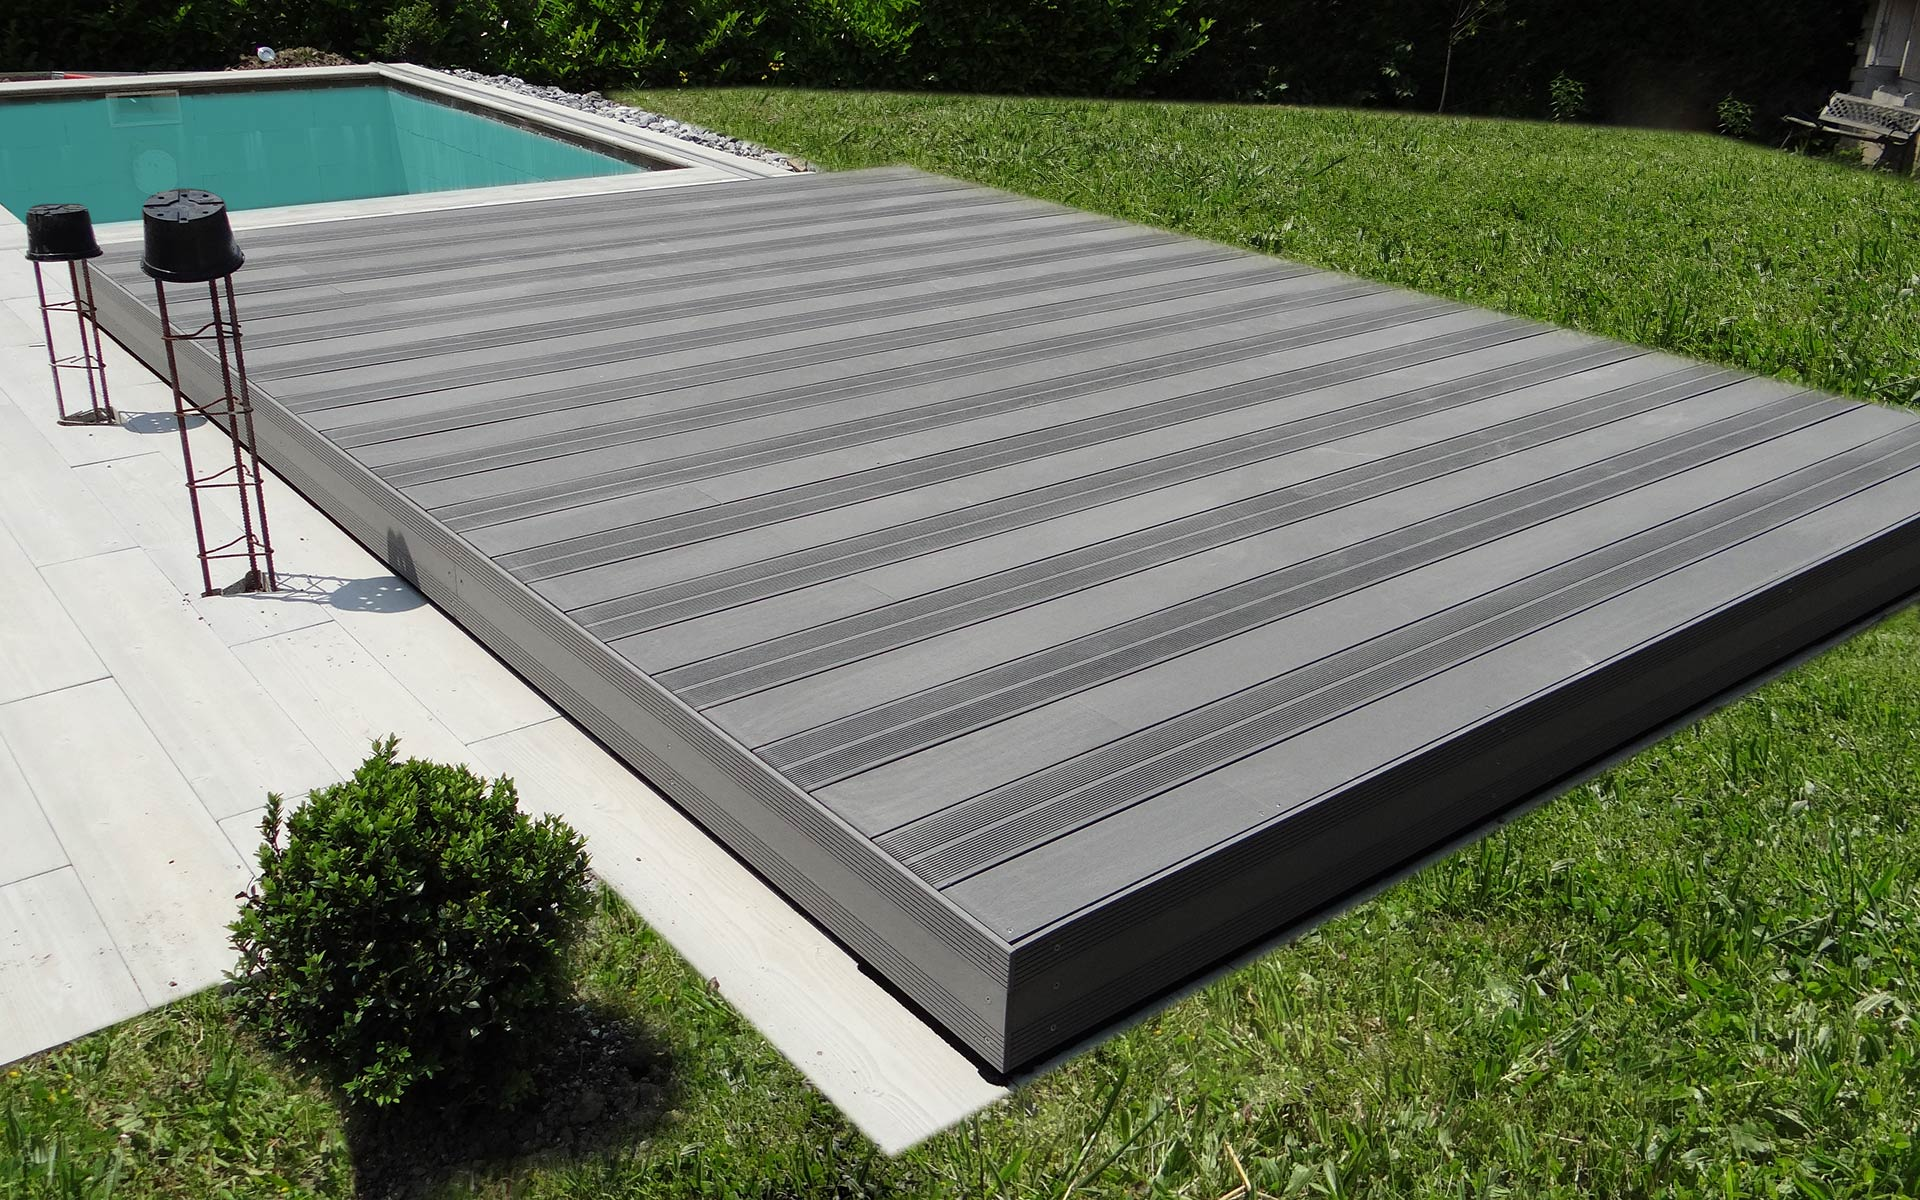 Terrasse mobile pour piscine hidden pool fond mobile for Piscine terrasse amovible